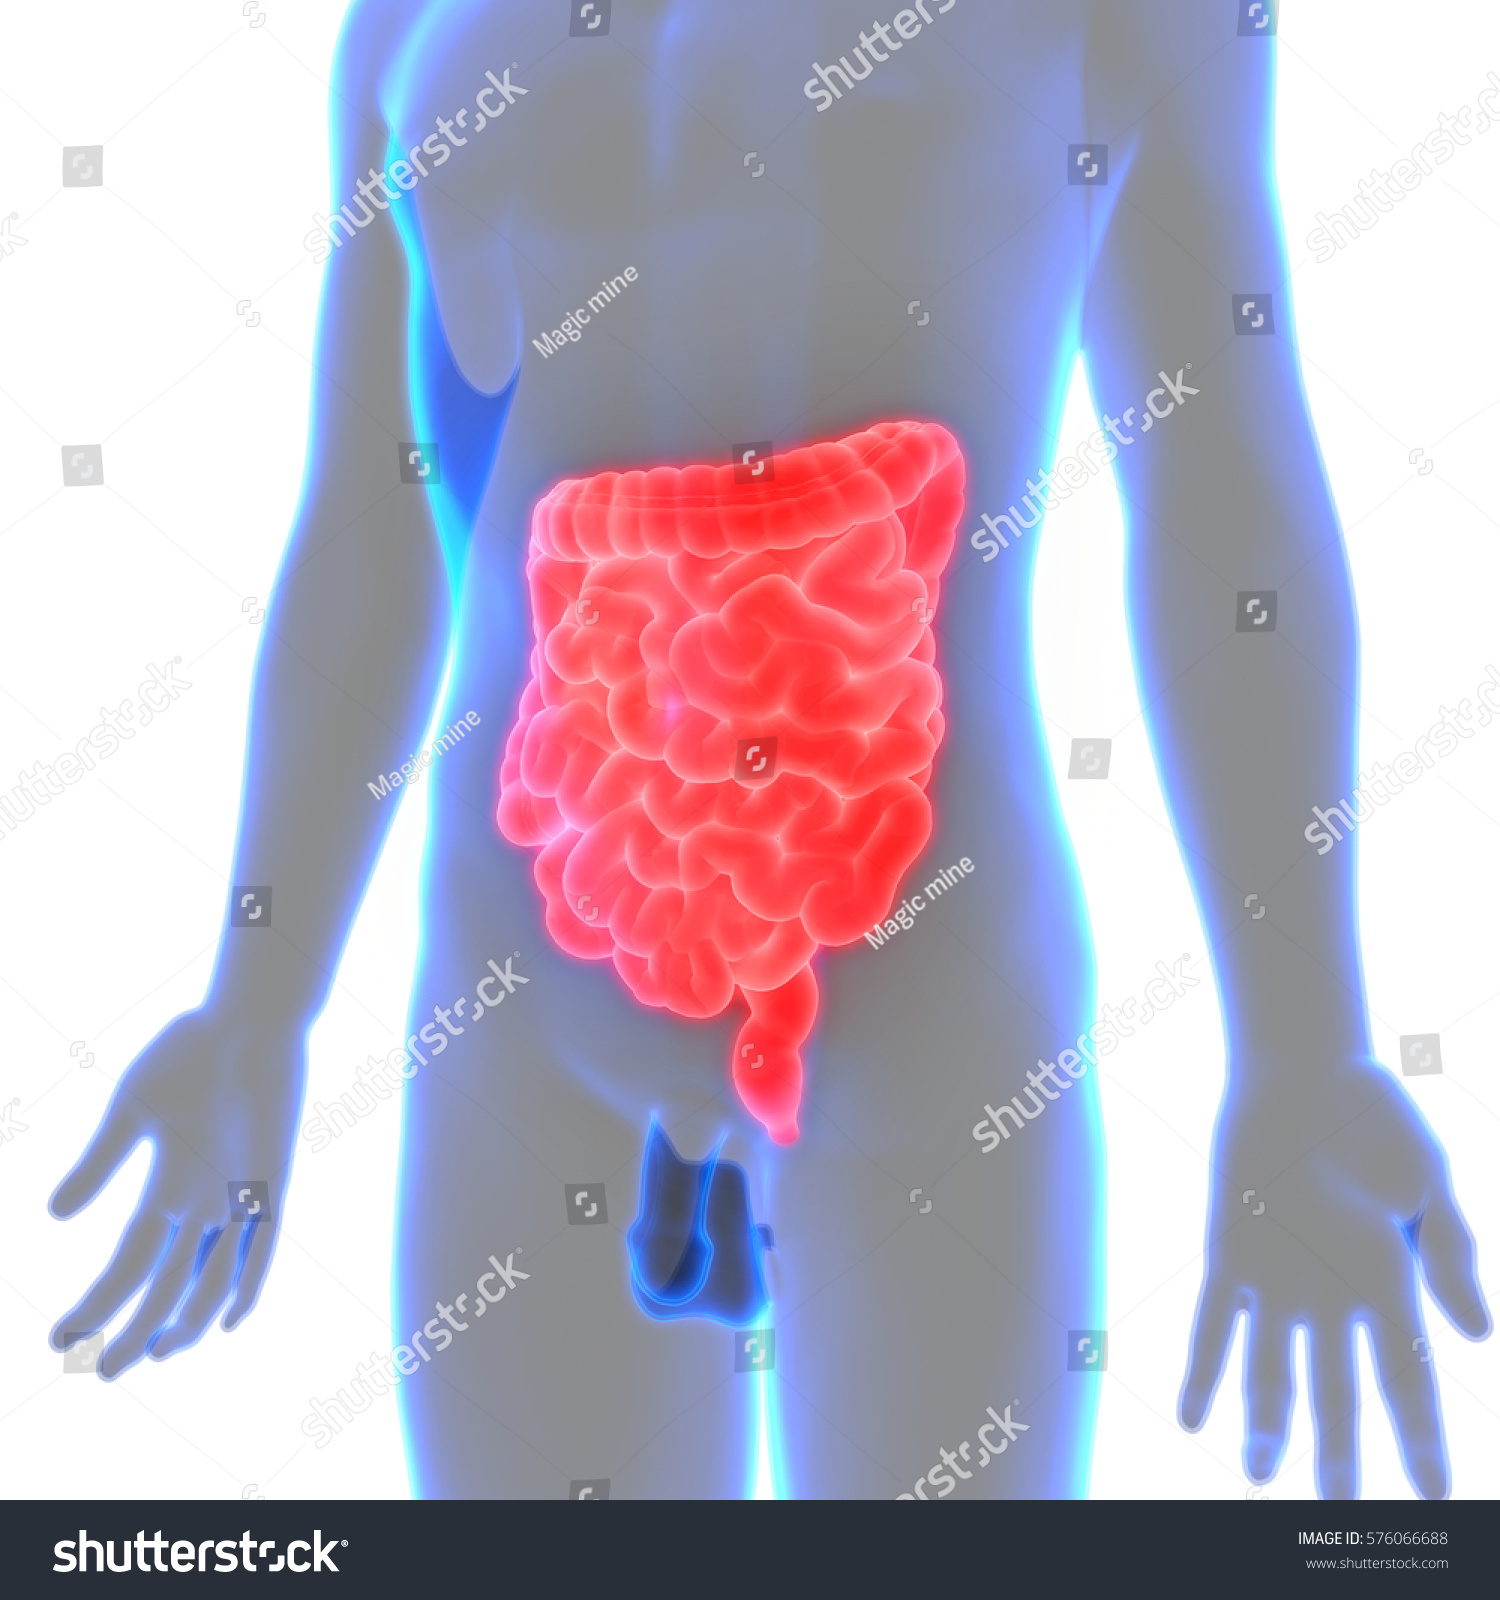 Human Body Organs Large Small Intestine Stock Illustration 576066688 ...